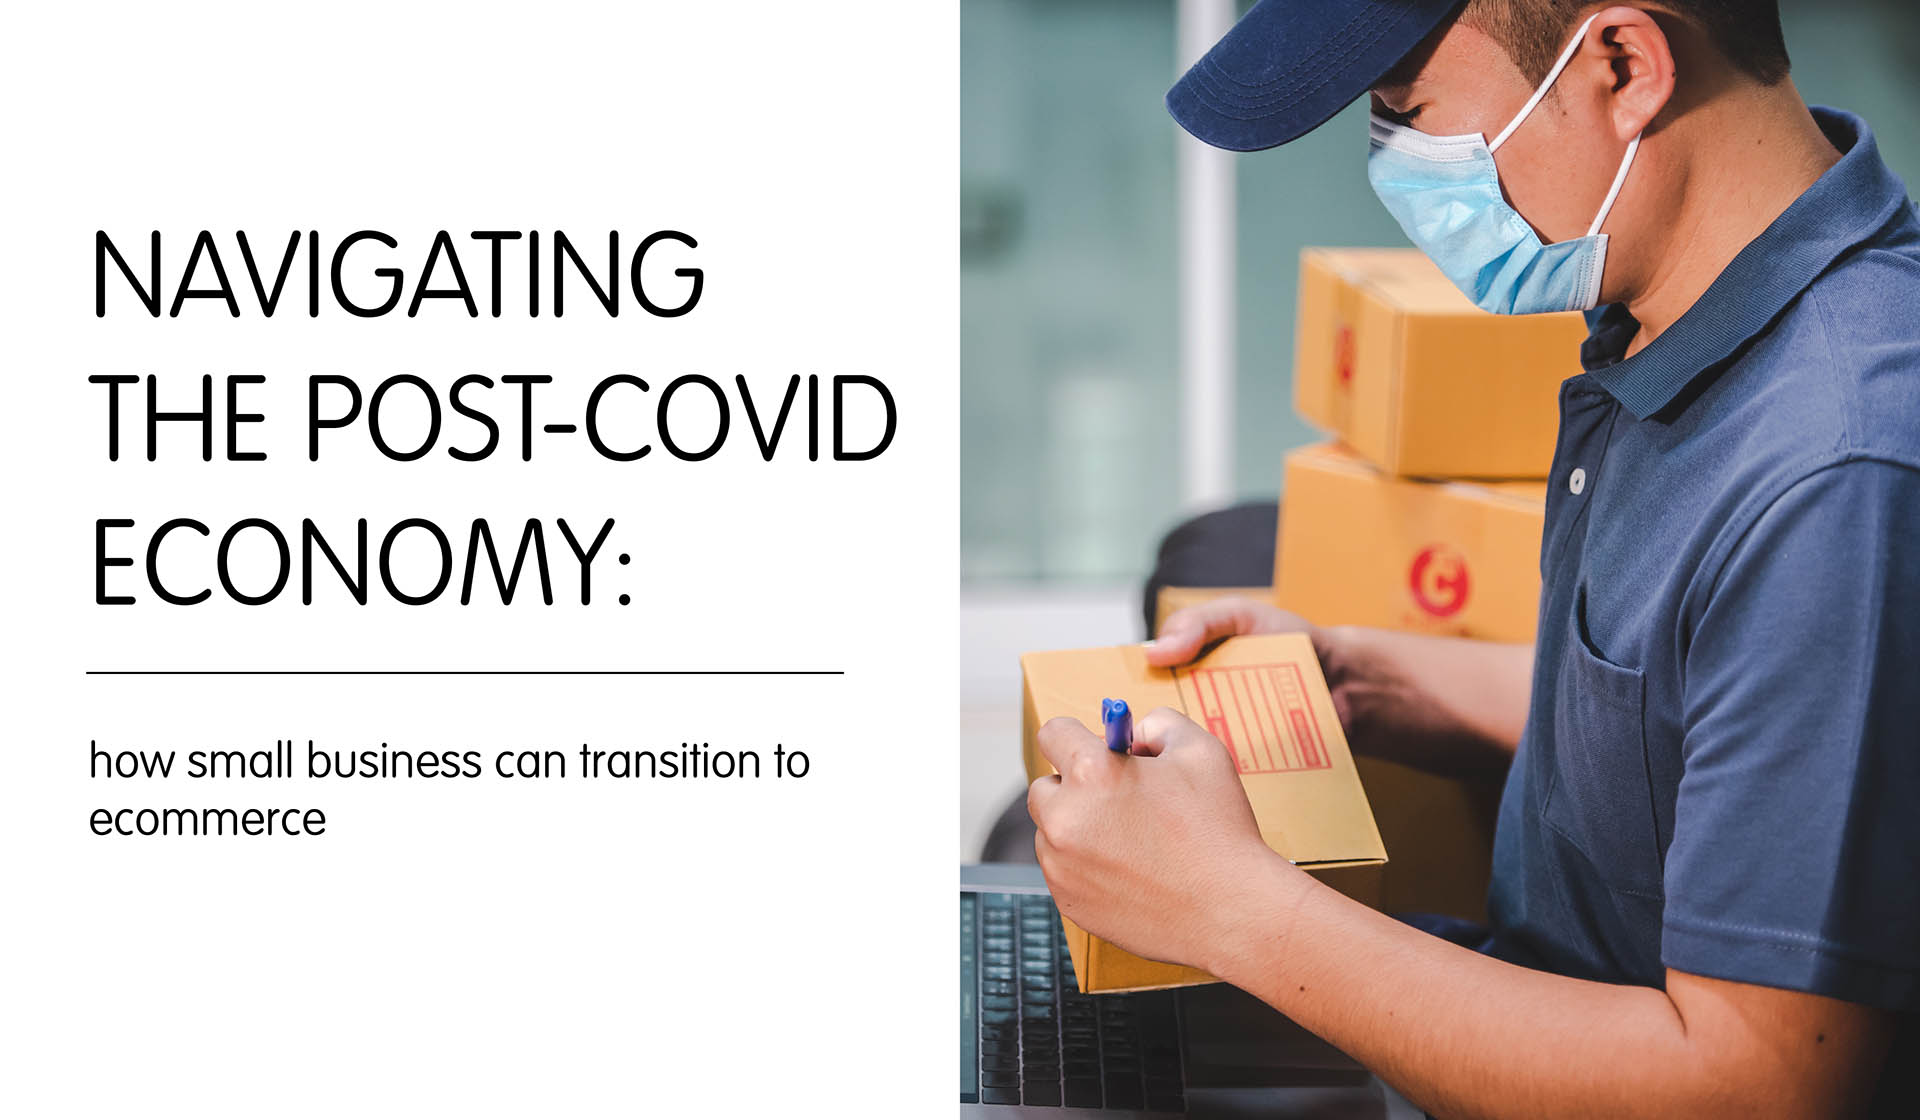 Navigating The Post-COVID Economy: How Small Business Can Transition to eCommerce